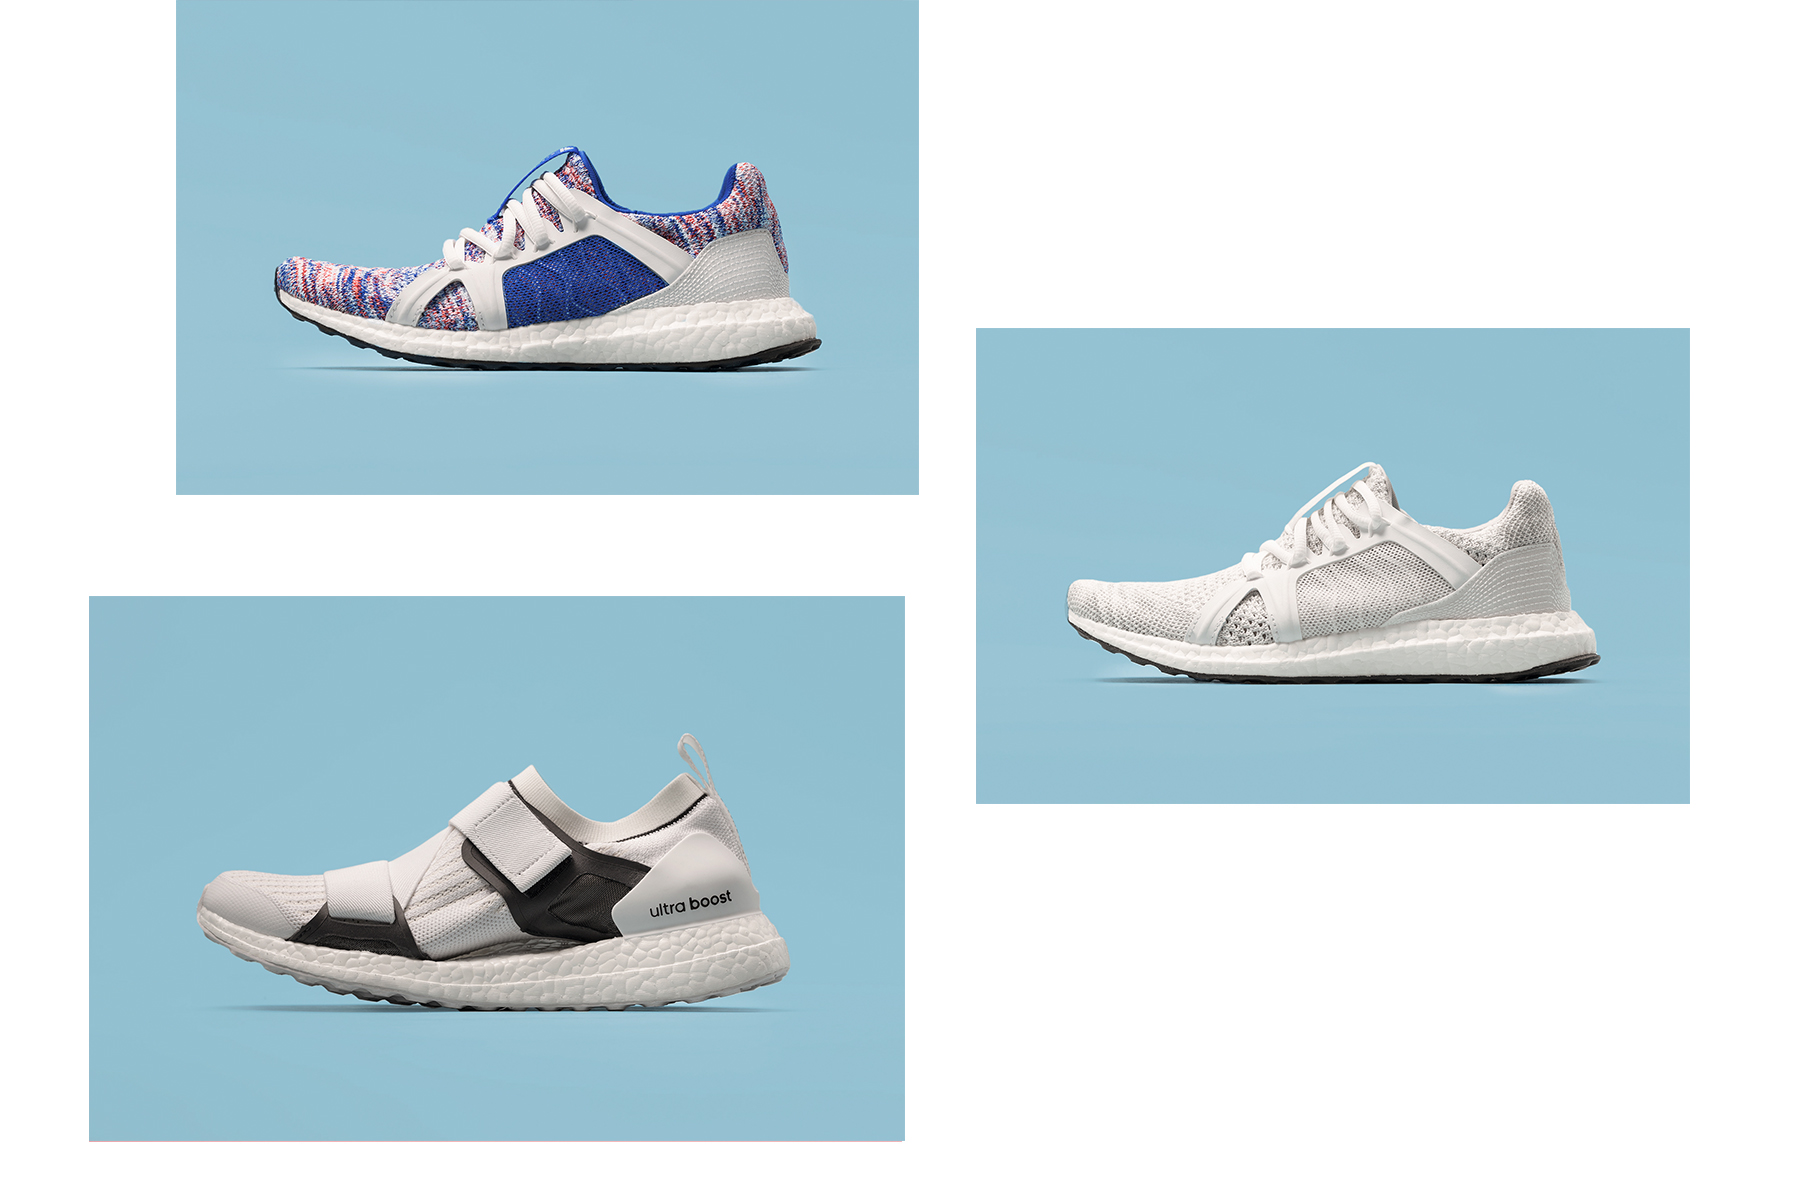 c95944c6a0c adidas by Stella McCartney Parley UltraBOOST X New Colorways Purple White  Grey Black Sustainable Footwear